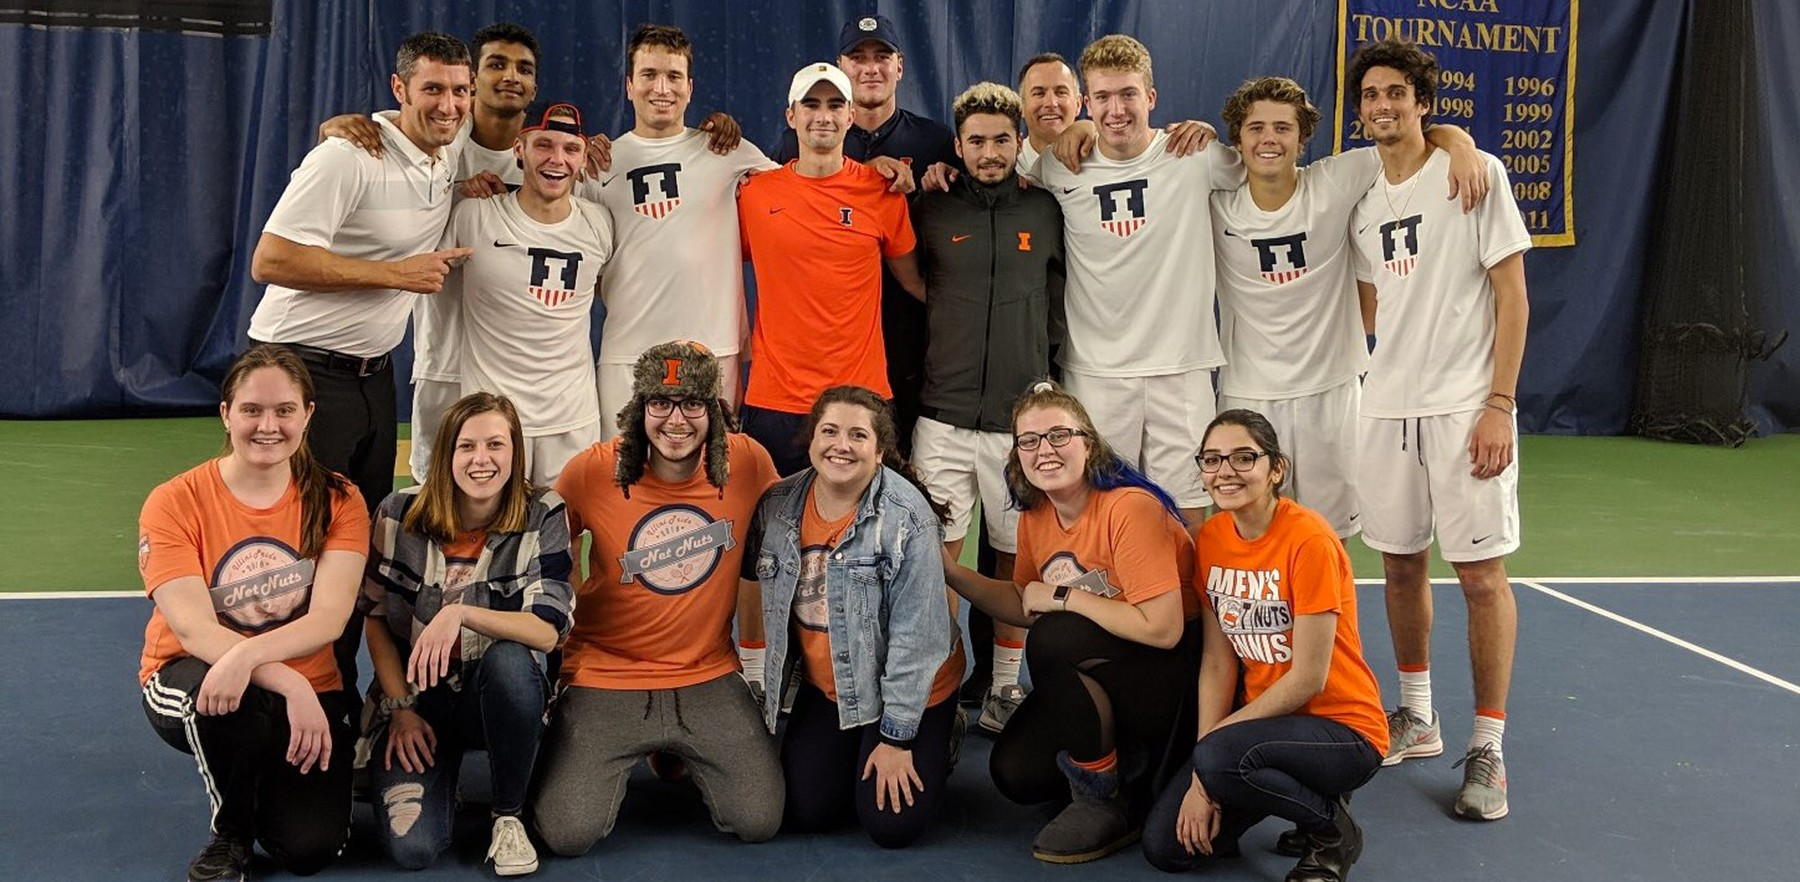 men's tennis team poses with Orange Krush members who traveled to the match